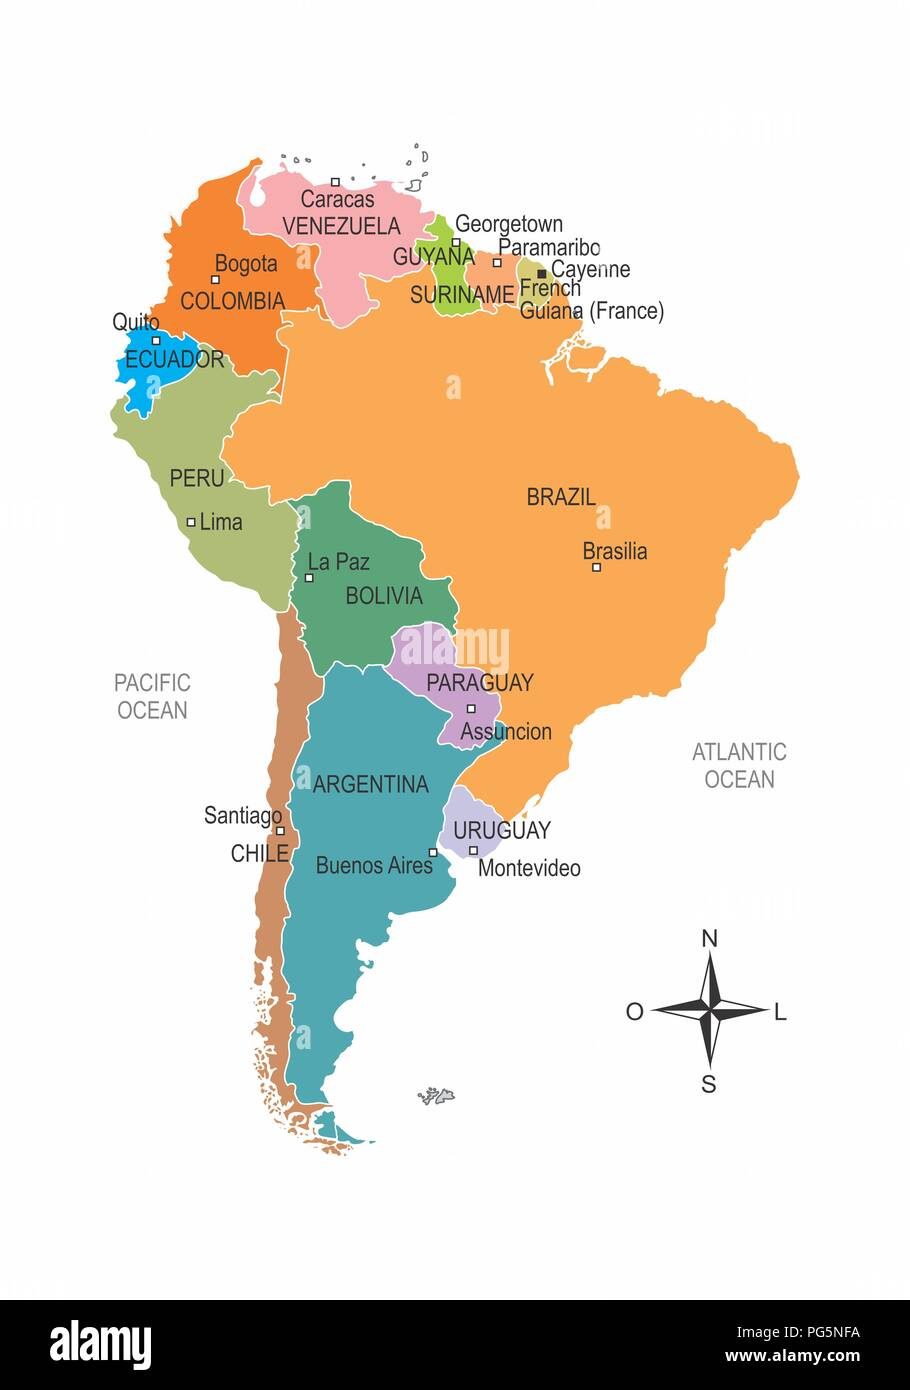 South America Map With Capitals And Countries.Colorful Map Of South America With Division Of Countries And Their